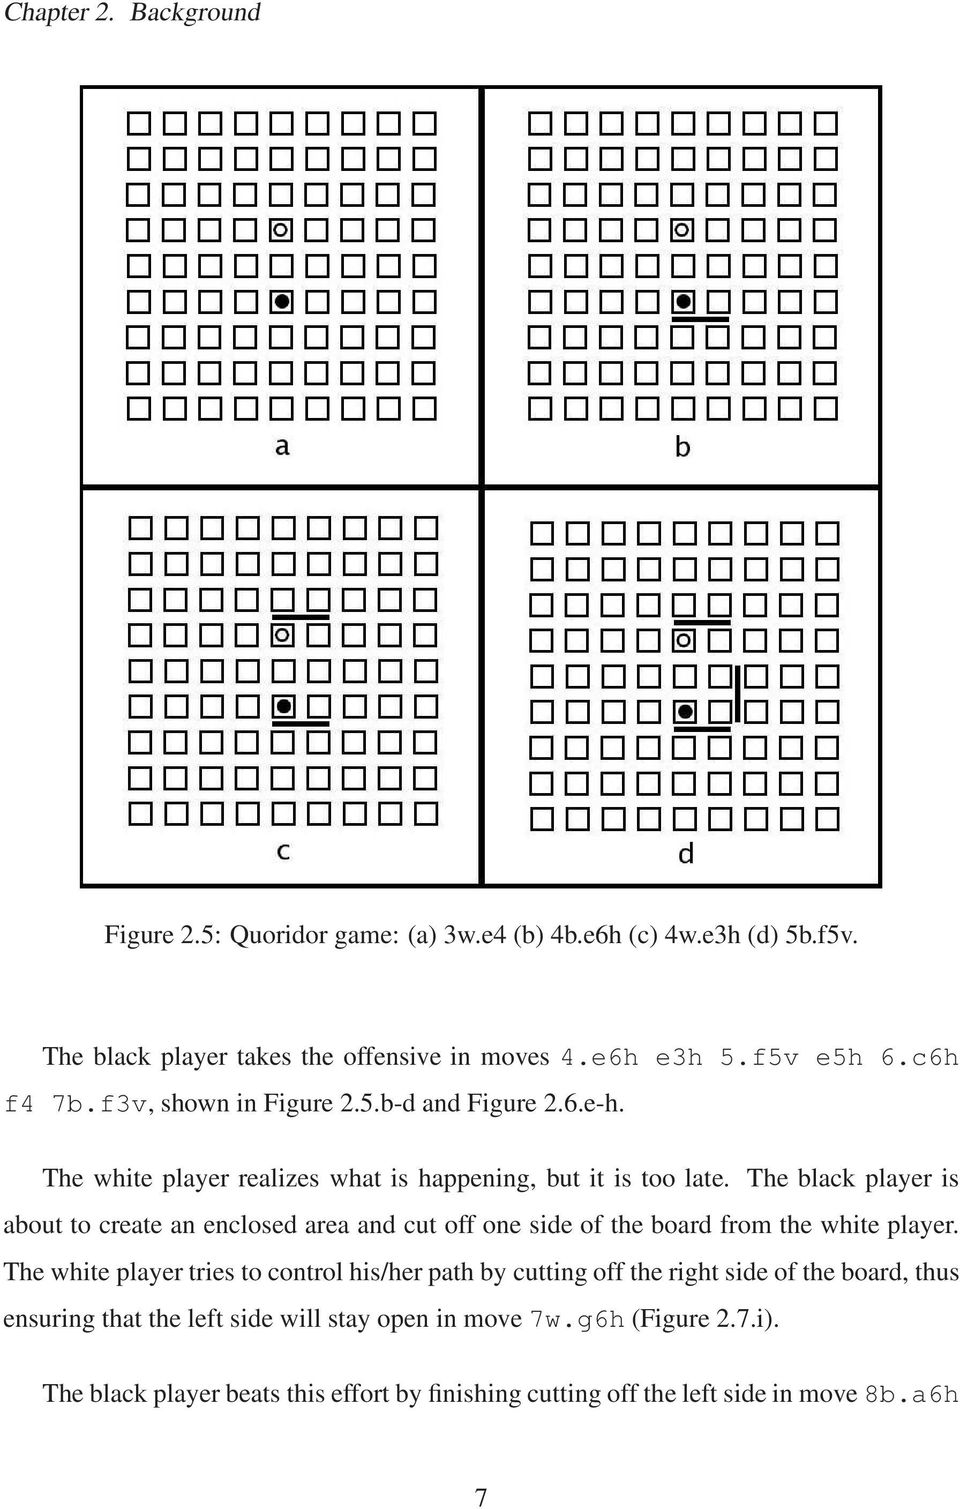 The black player is about to create an enclosed area and cut off one side of the board from the white player.